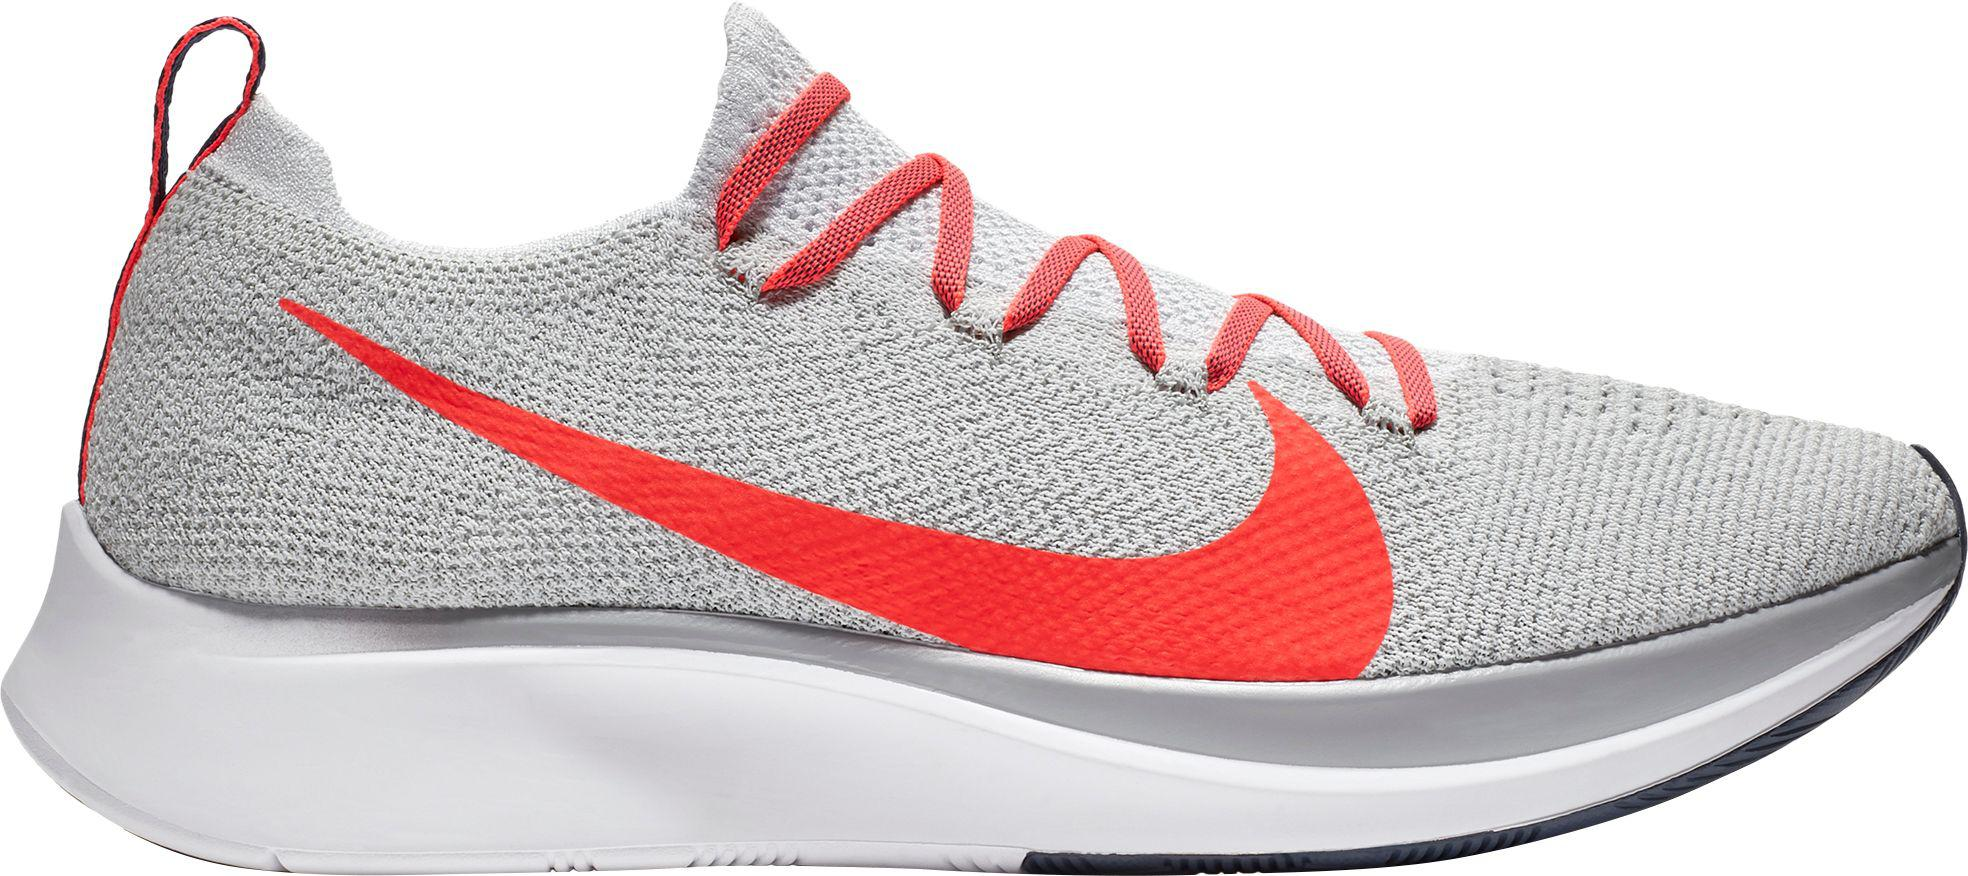 caa217d70654 Lyst - Nike Zoom Fly Flyknit Running Shoes in Gray for Men